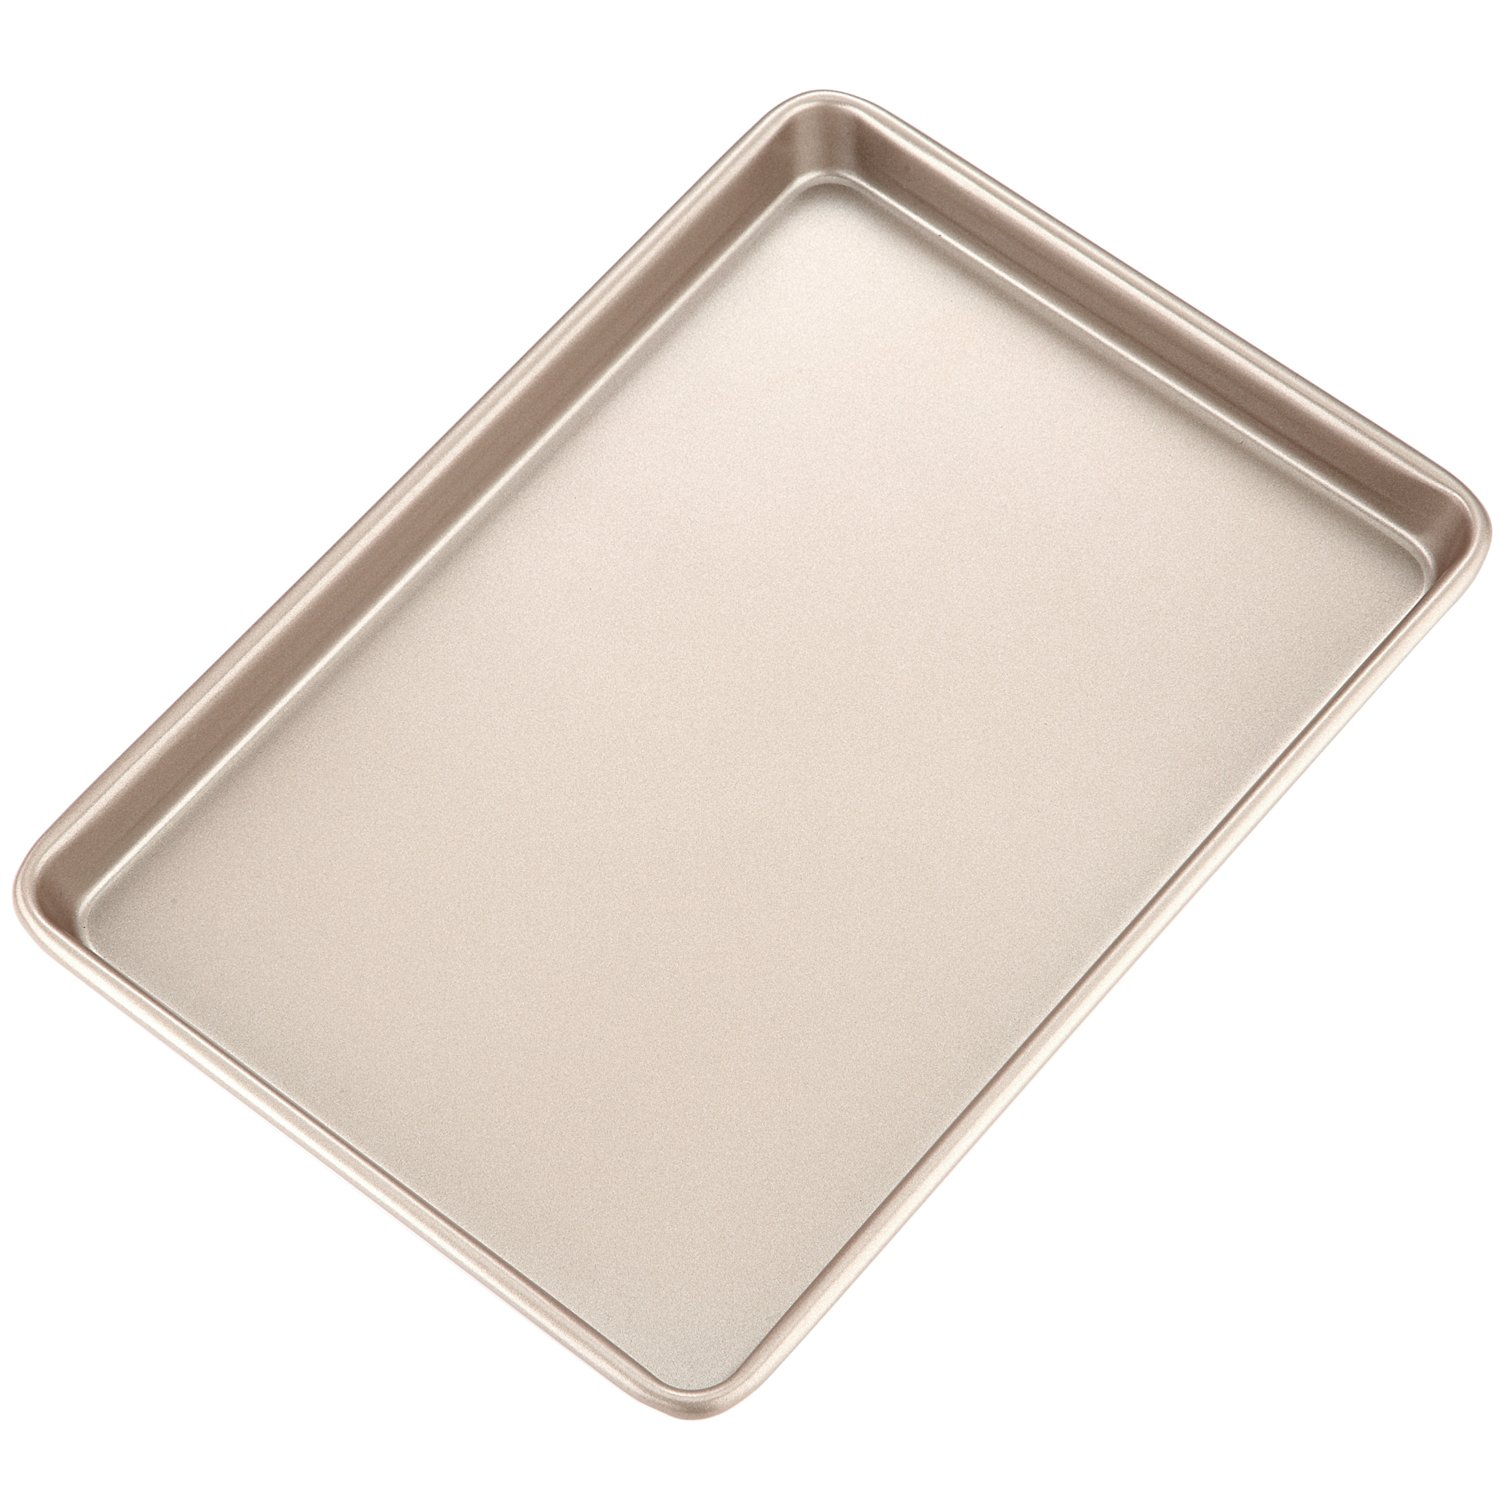 "CHEFMADE 15-Inch Rimmed Baking Pan, Non-stick Carbon Steel Cookie Sheet Pan, FDA Approved for Oven Roasting Meat Bread Jelly Roll Battenberg Pizzas Pastries 15"" x 10"" (Champagne Gold)"